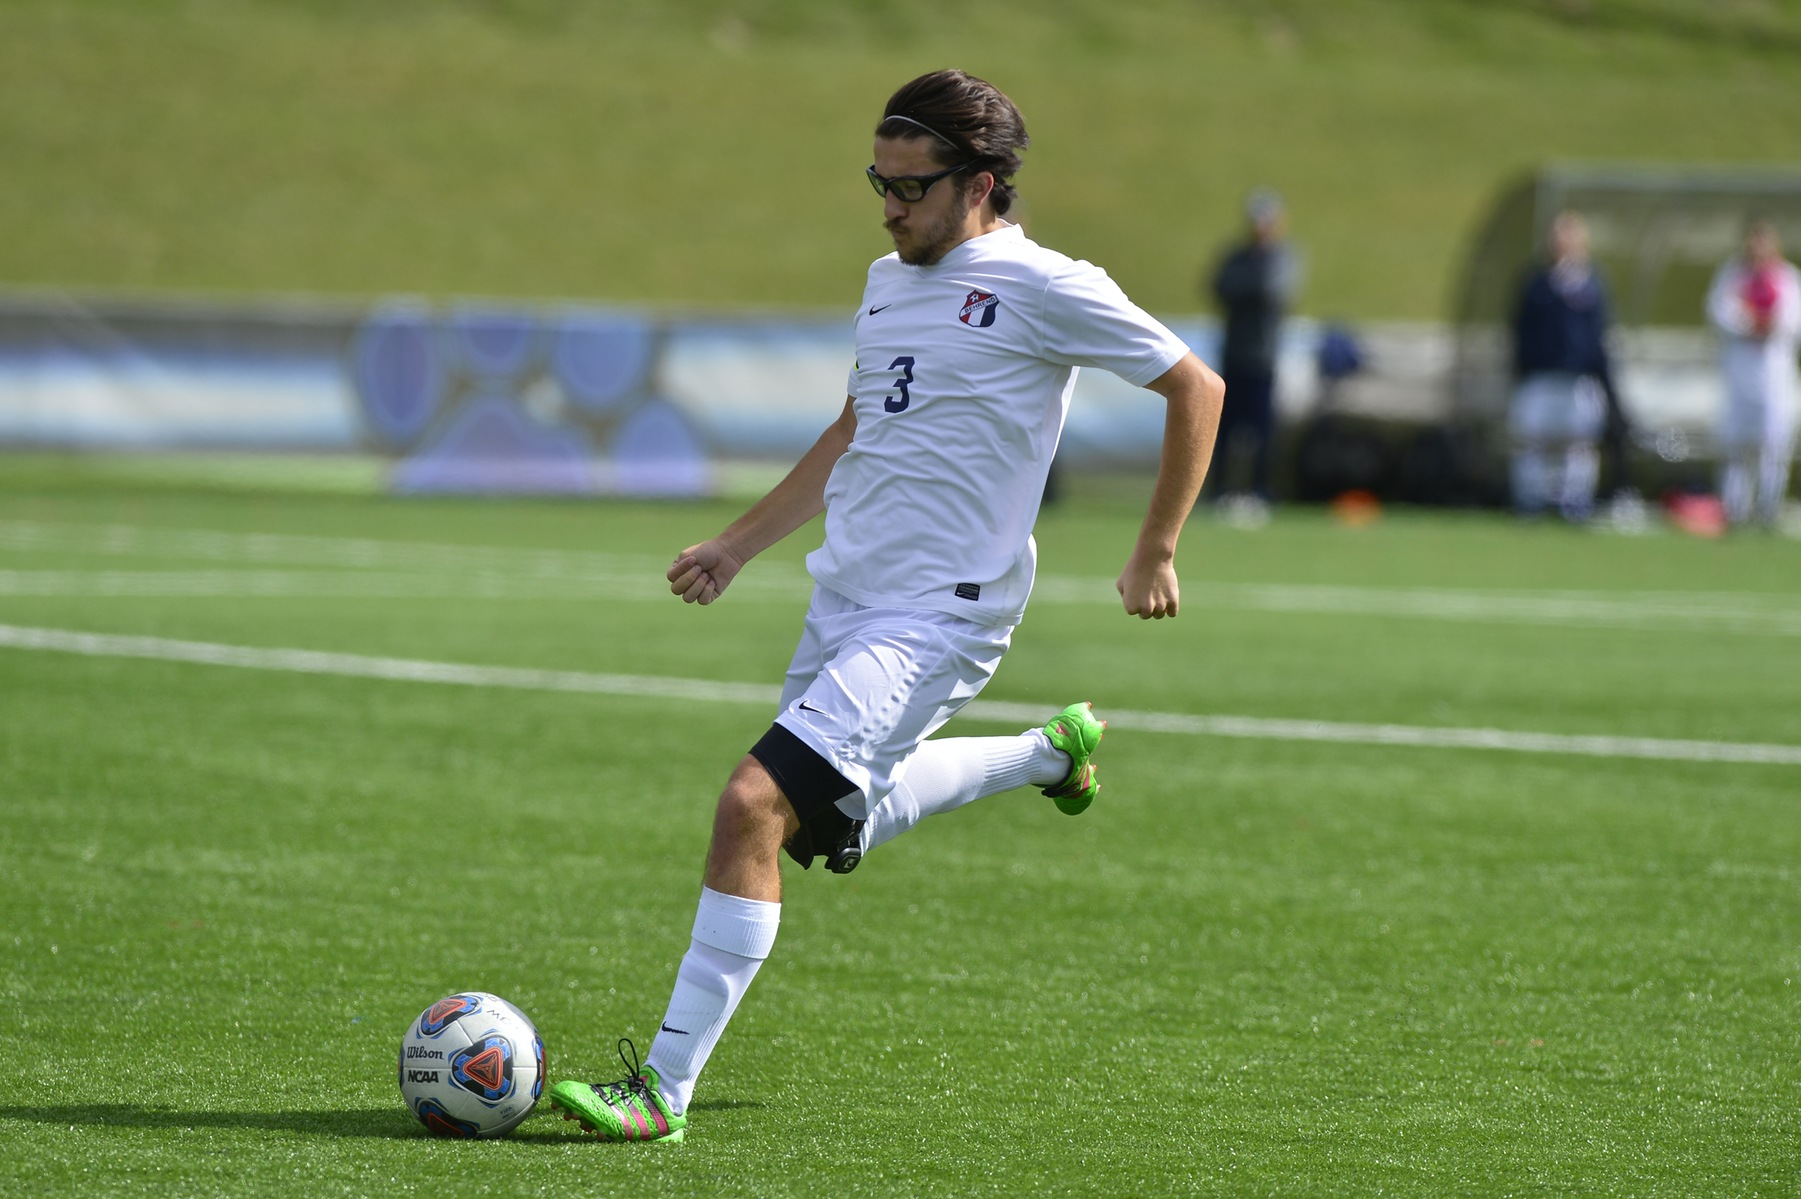 Men's Soccer Secures Spot in AMCC Title Match